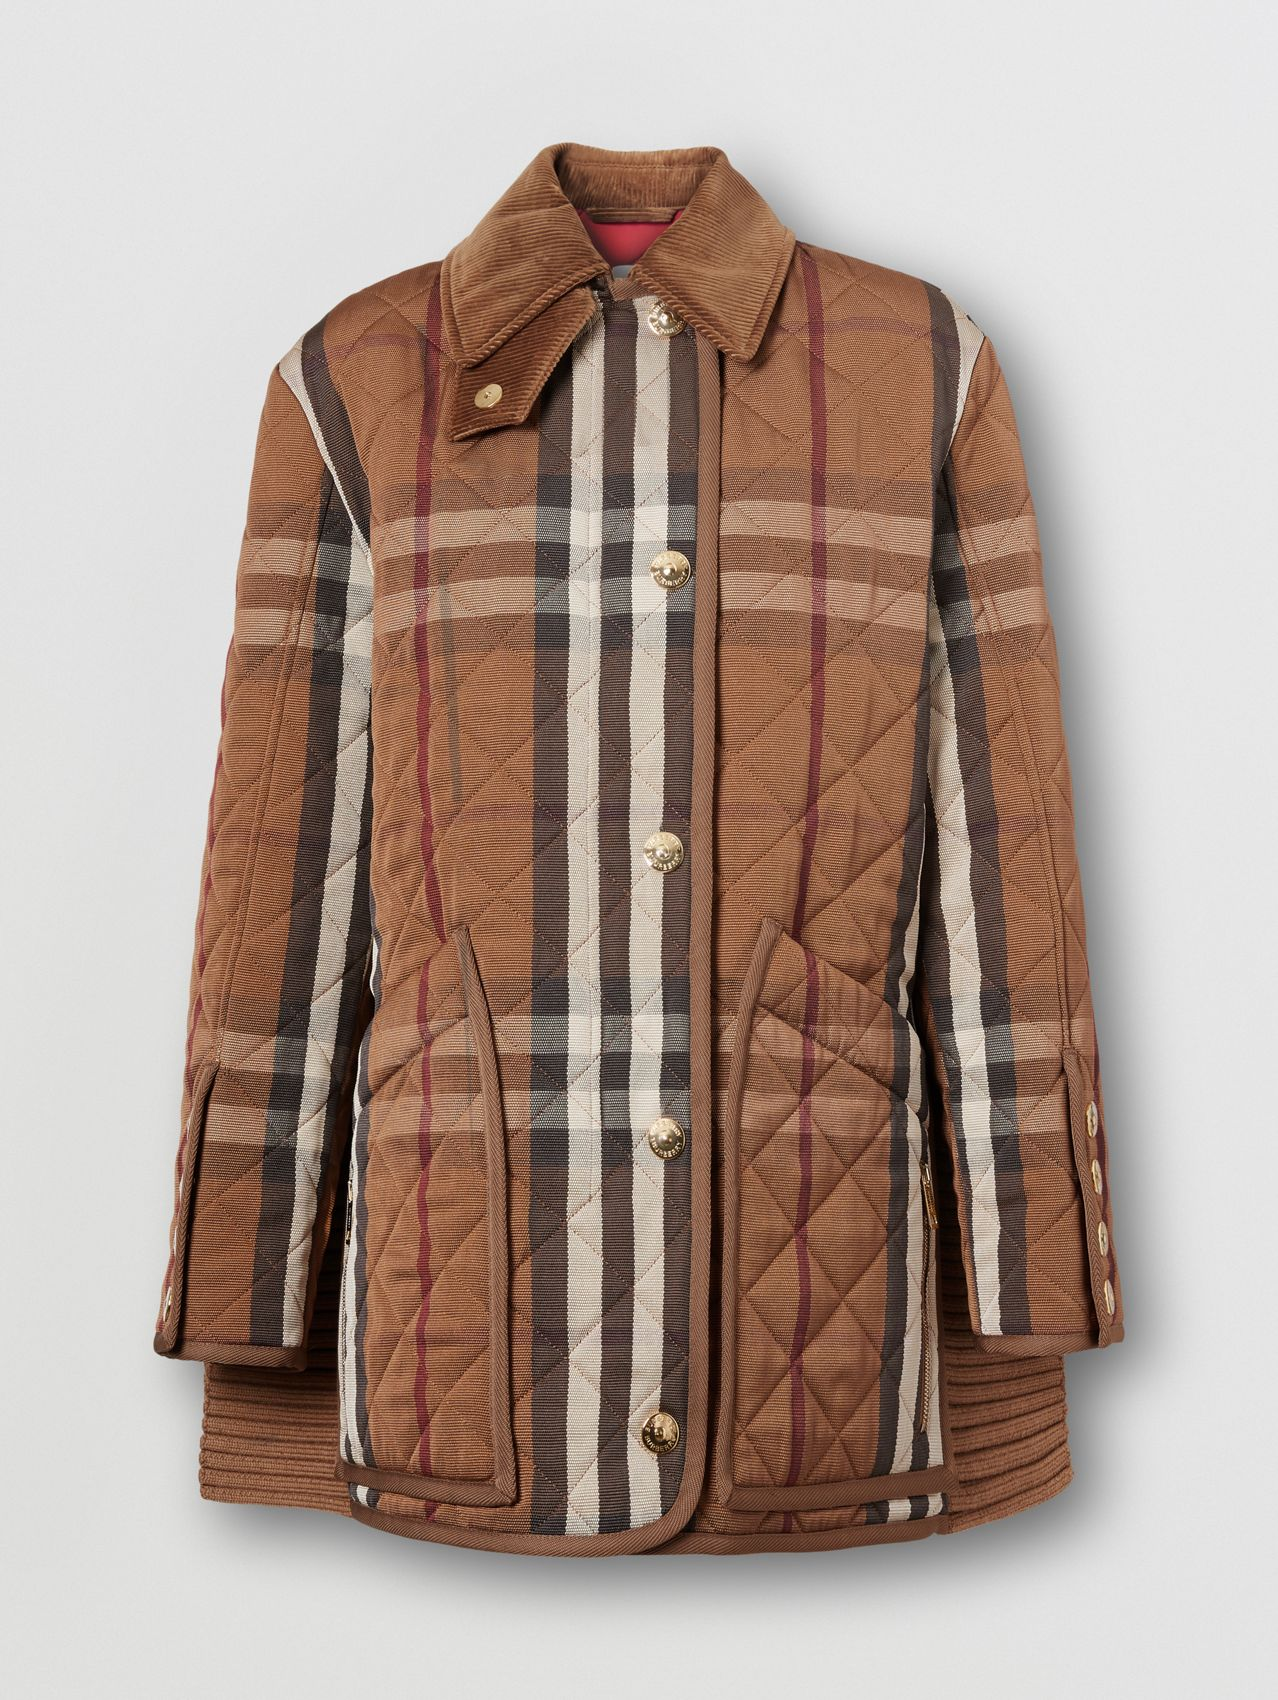 Rib Knit Panel Check Technical Cotton Barn Jacket in Birch Brown